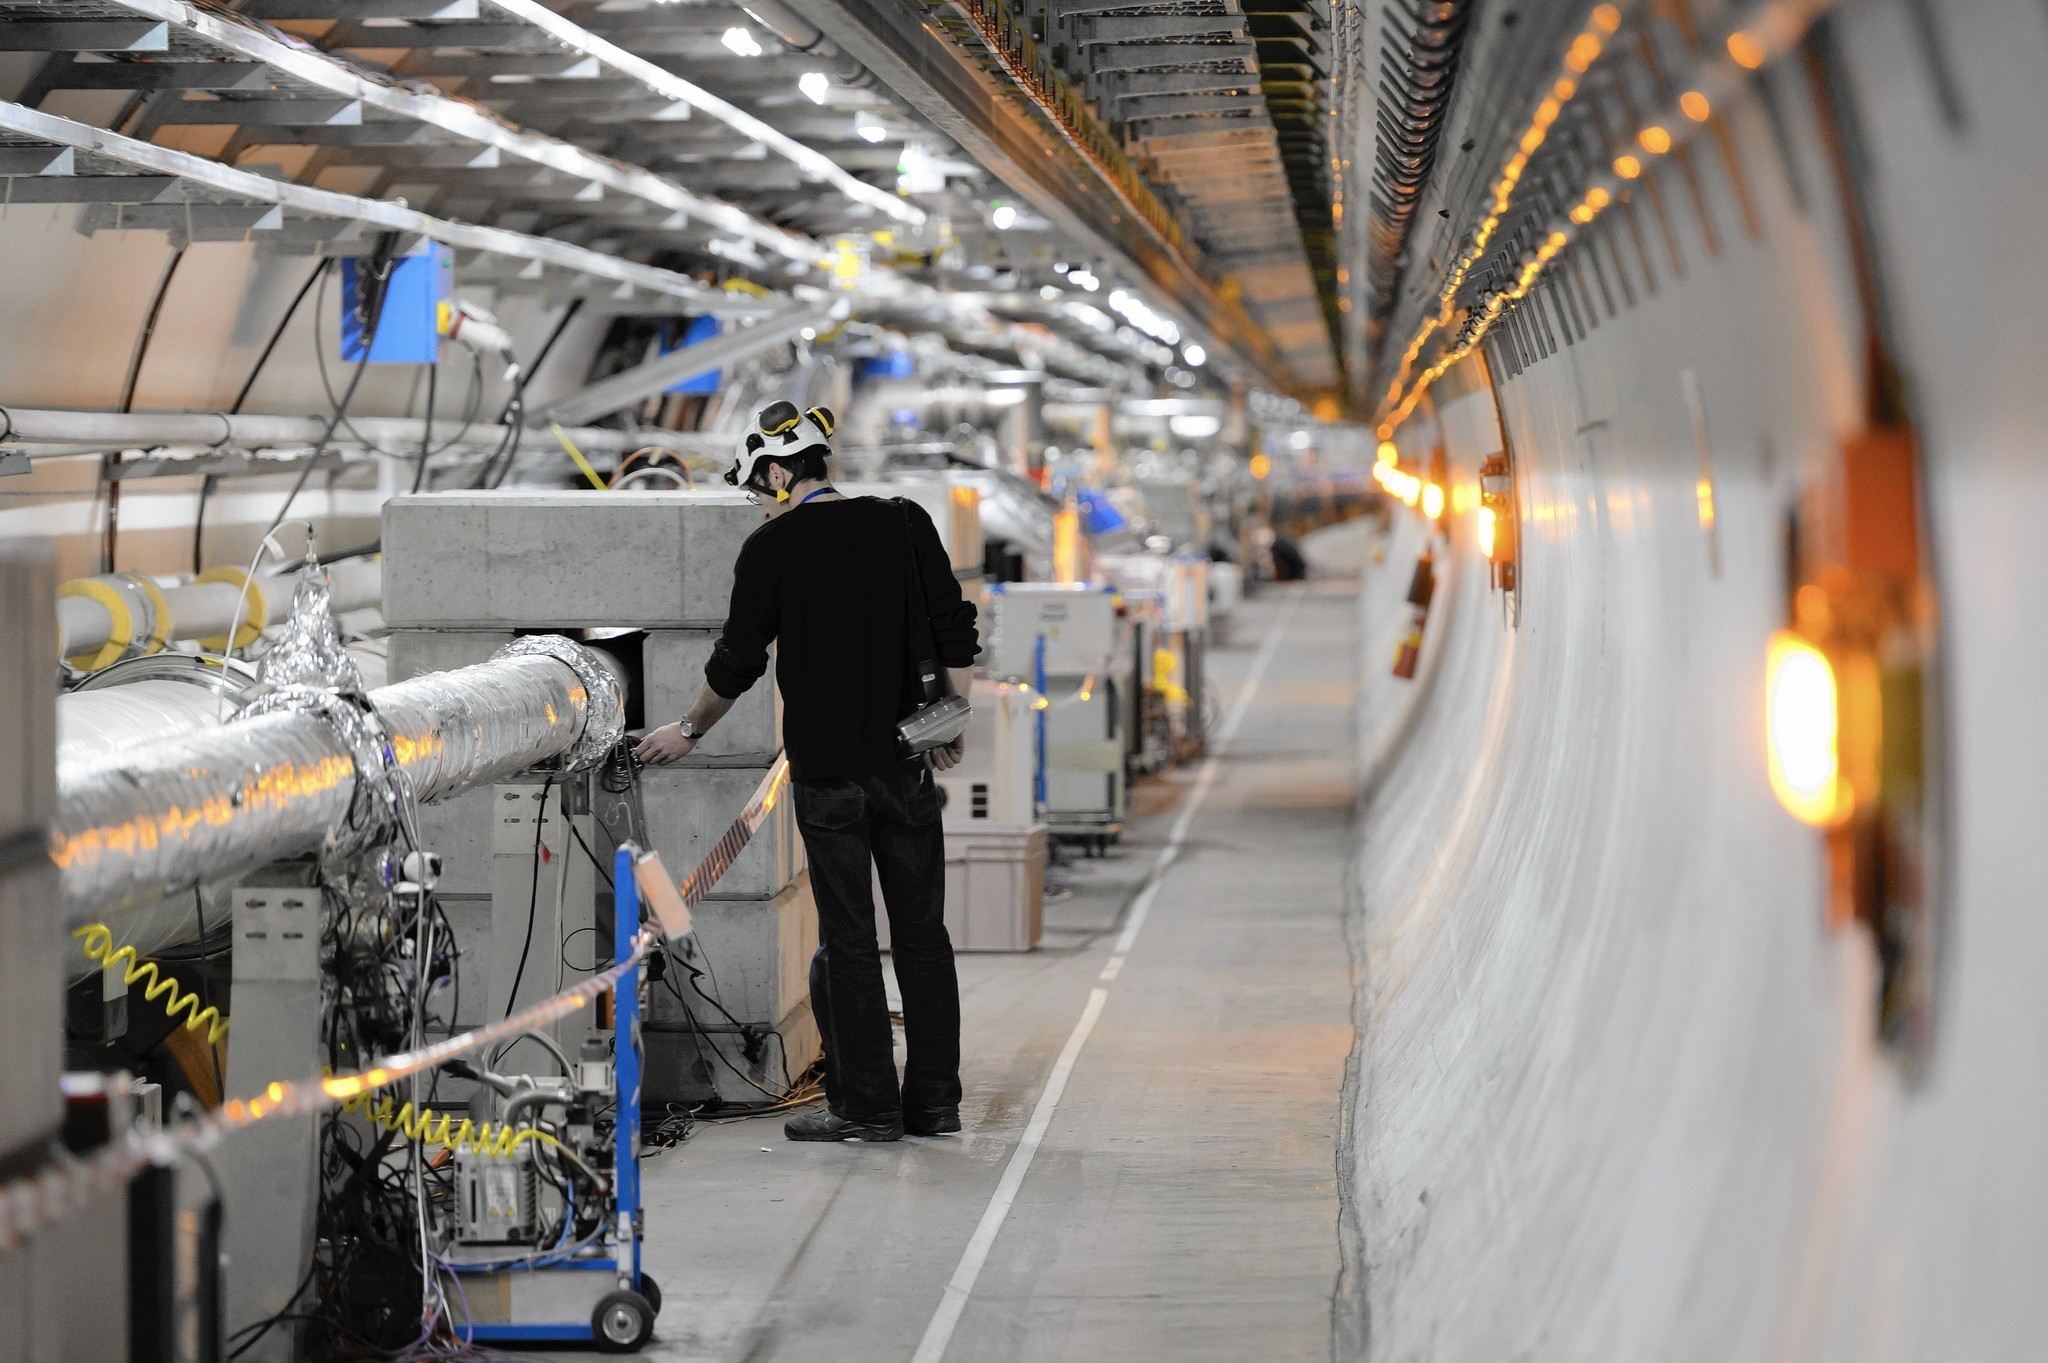 The lesson from CERN: Why scientists should celebrate ...